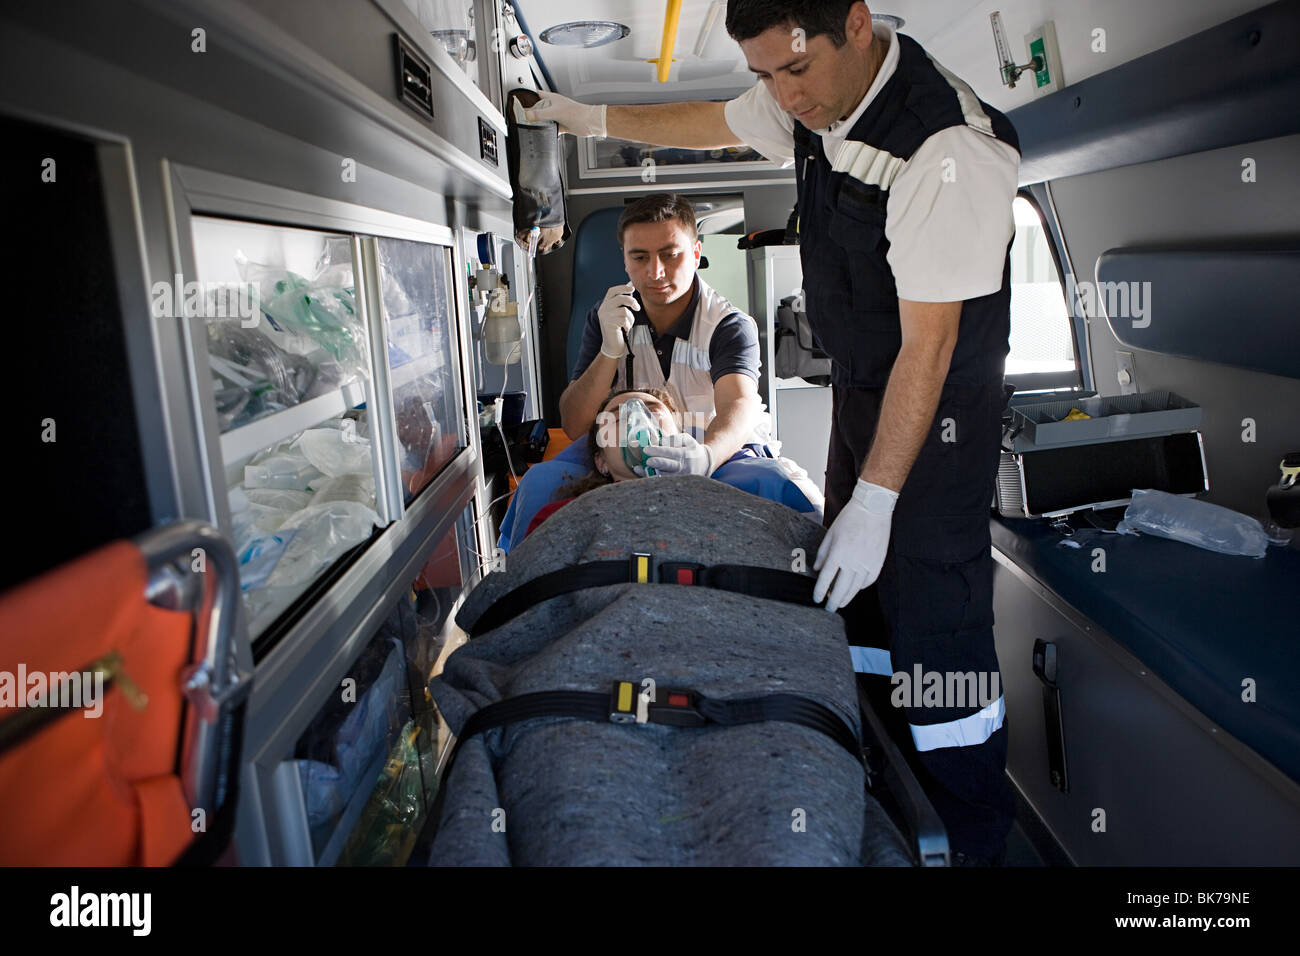 Ambulance staff and patient on stretcher - Stock Image